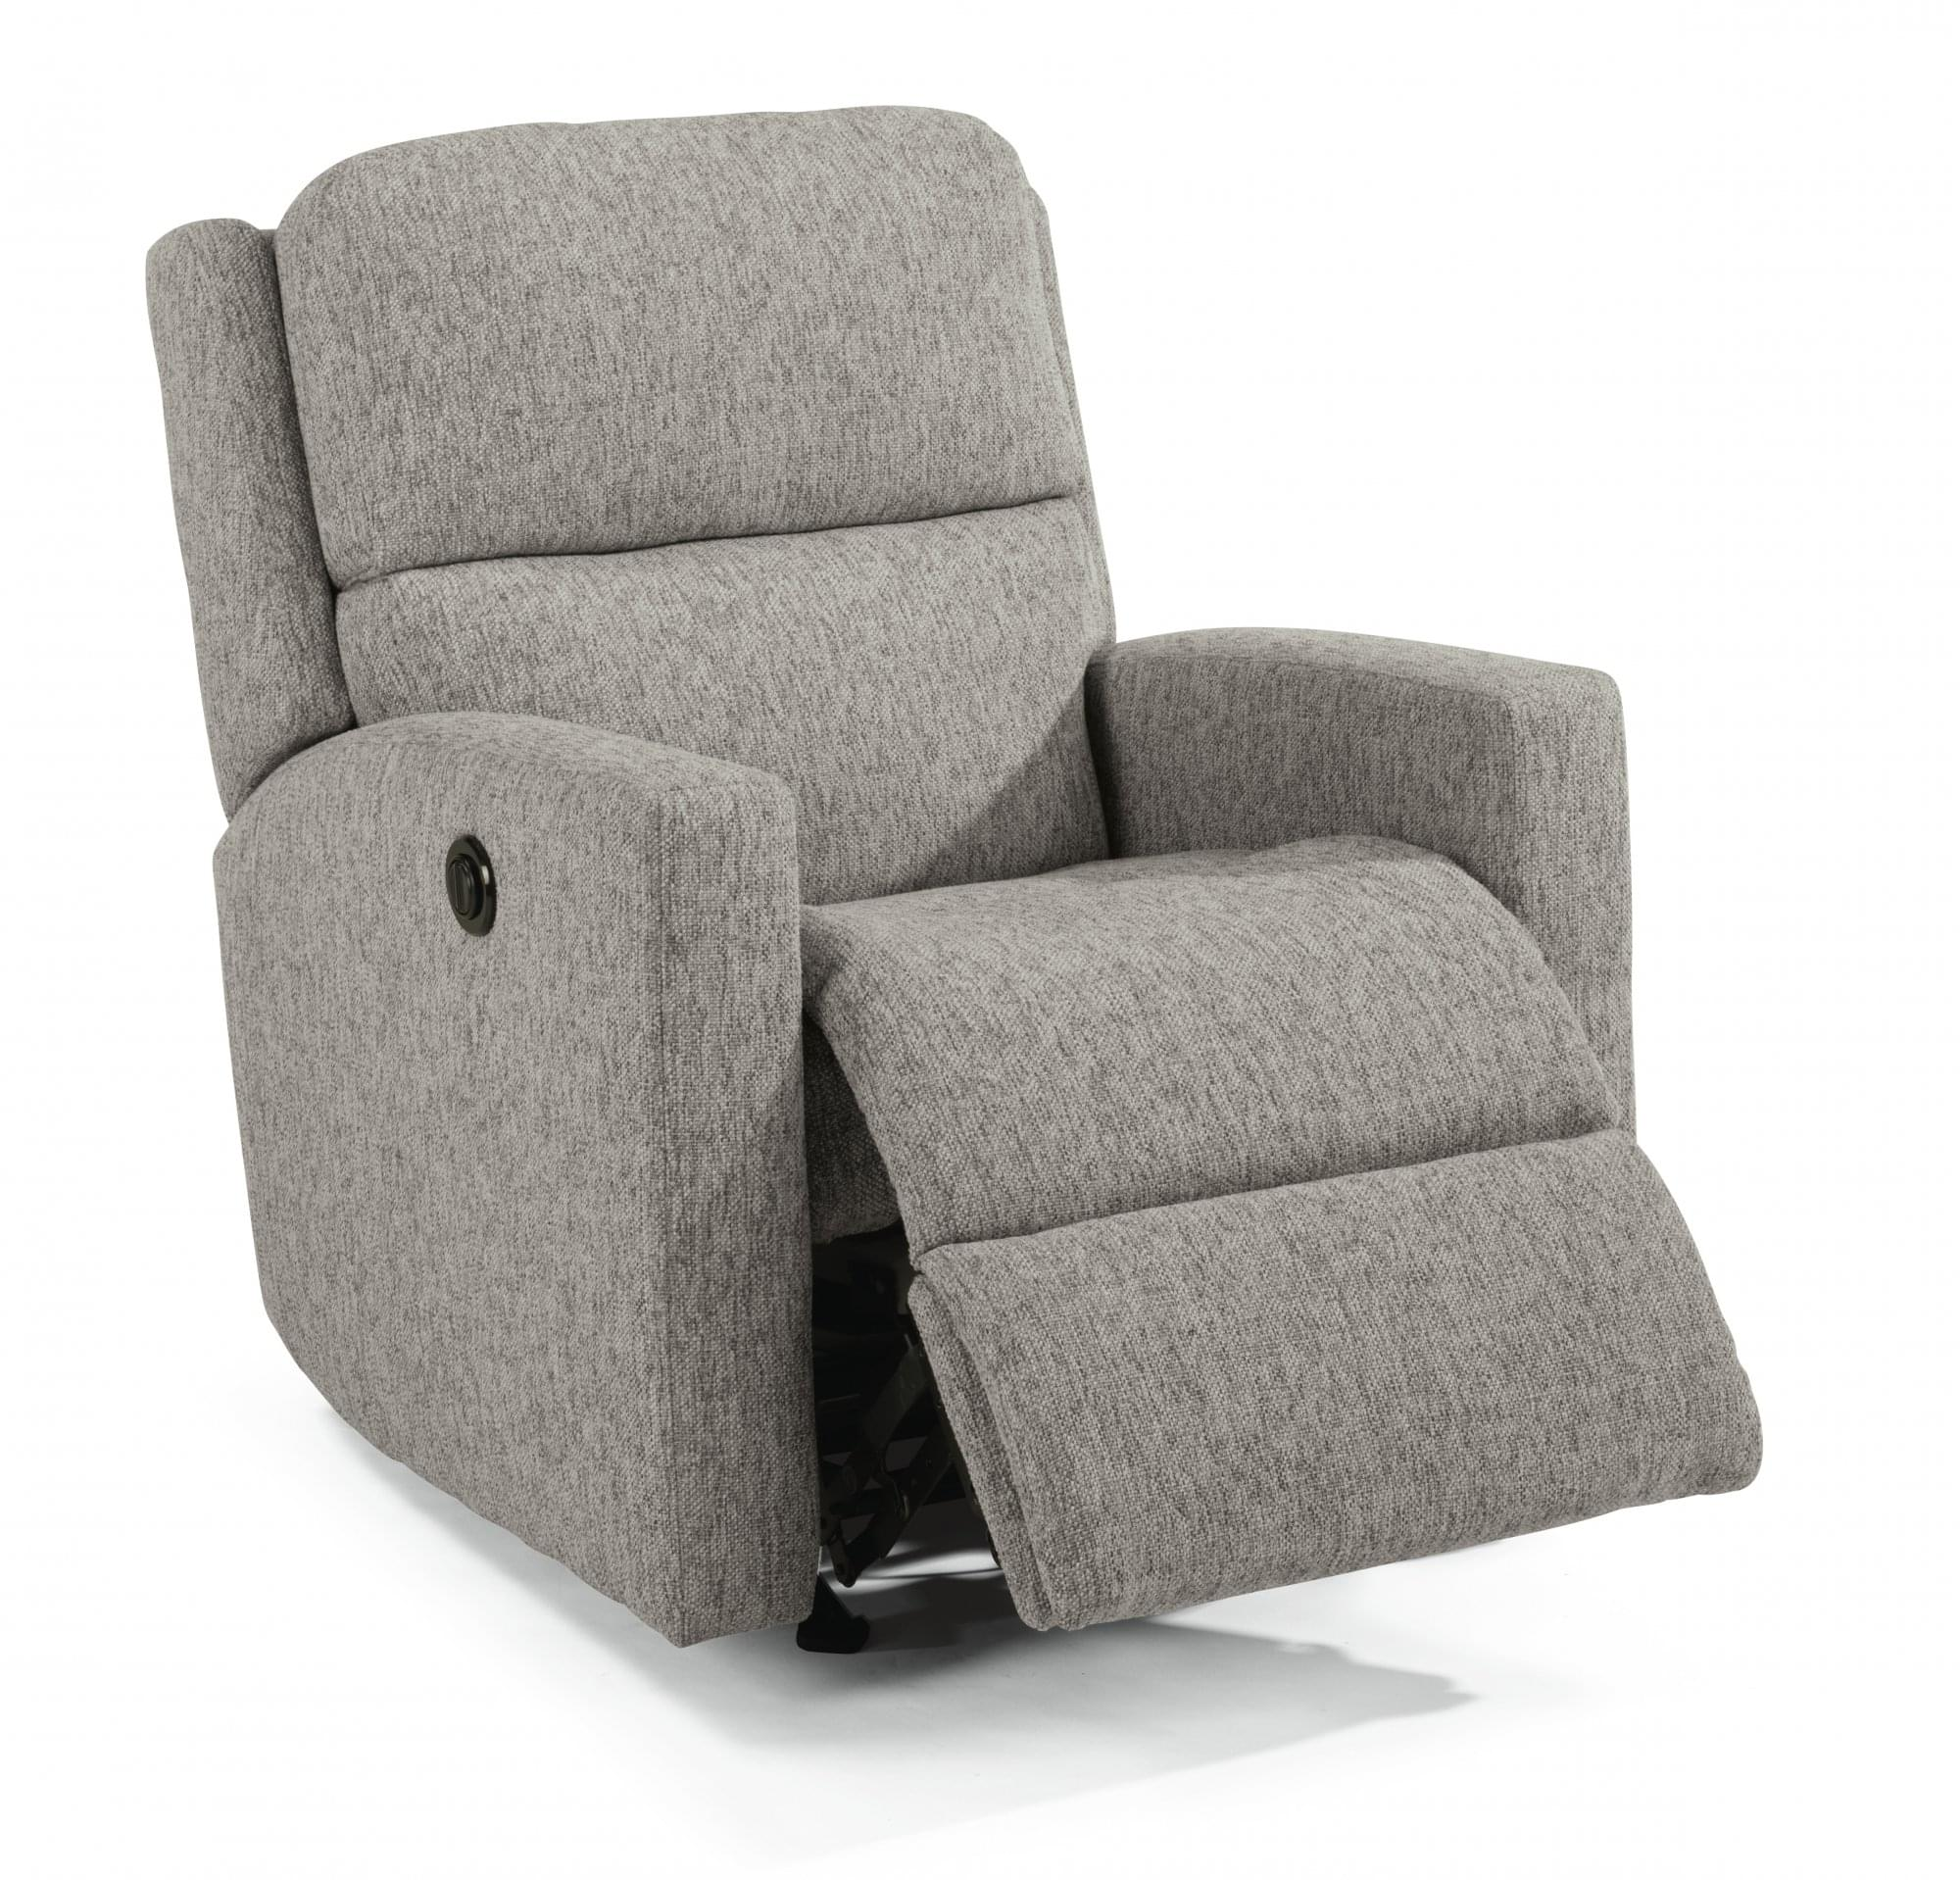 Flexsteel Chip Recliner at Mums Place Furniture Carmel CA